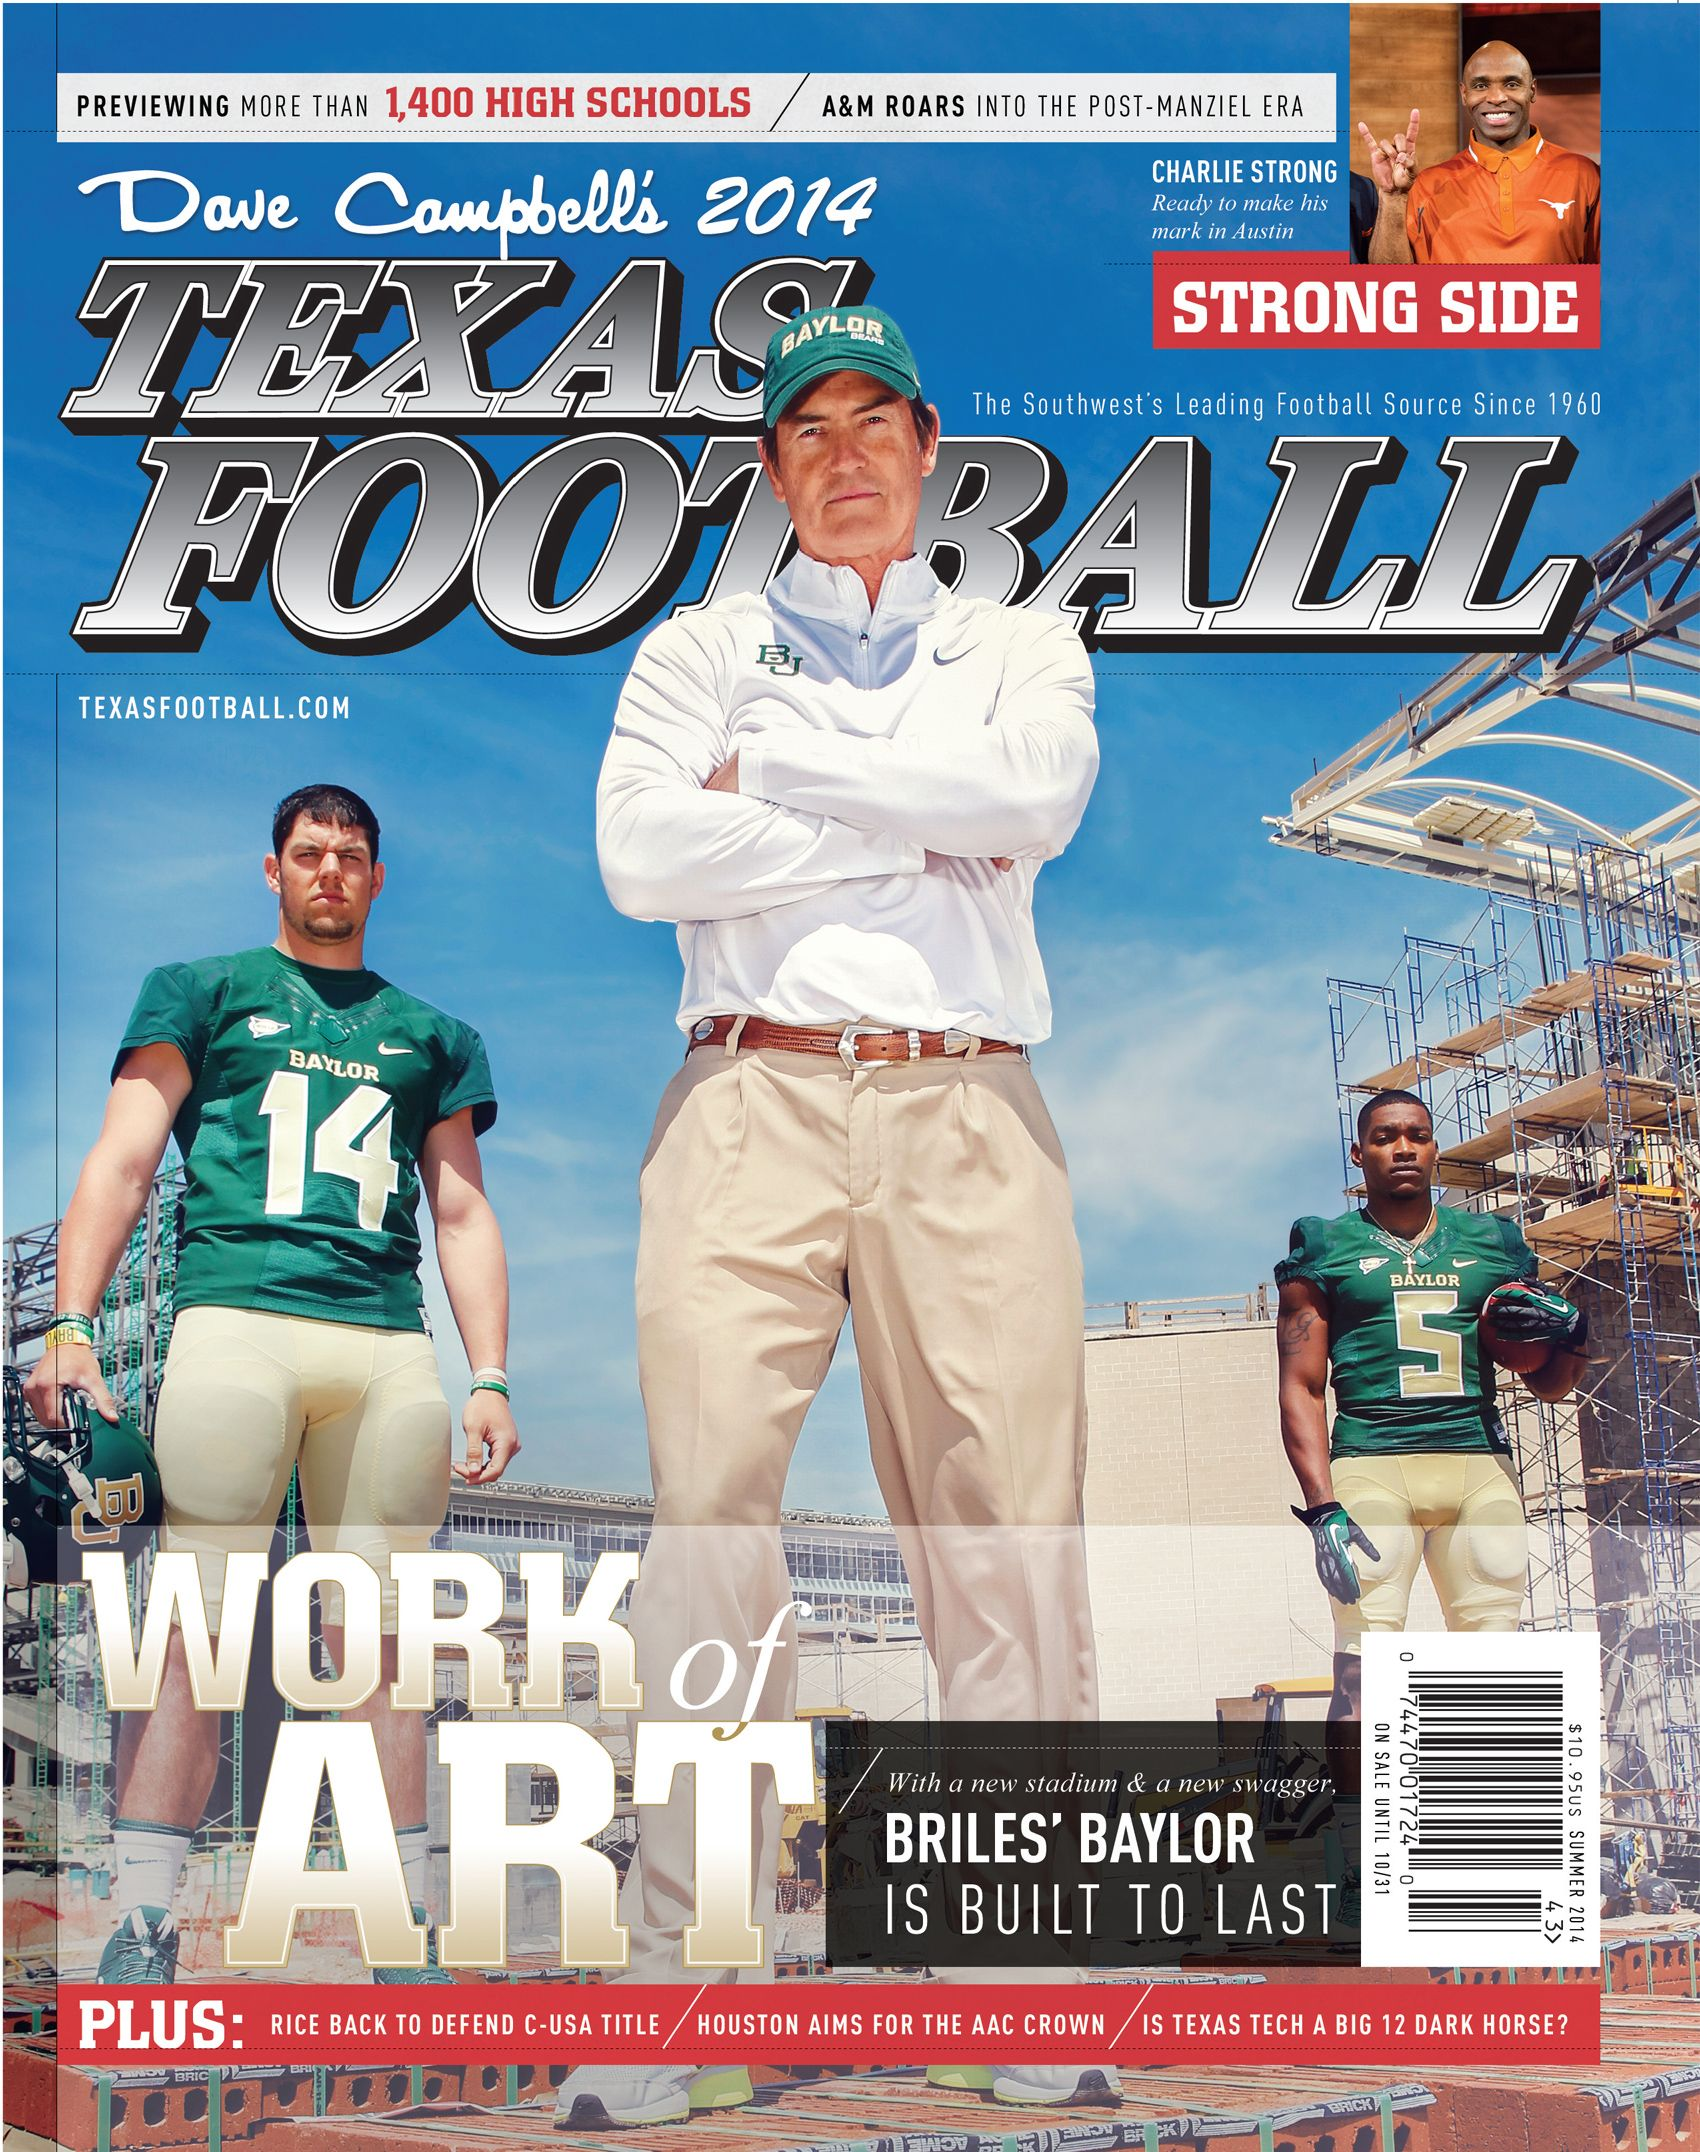 Baylor lands cover of 2014 'Texas Football' magazine